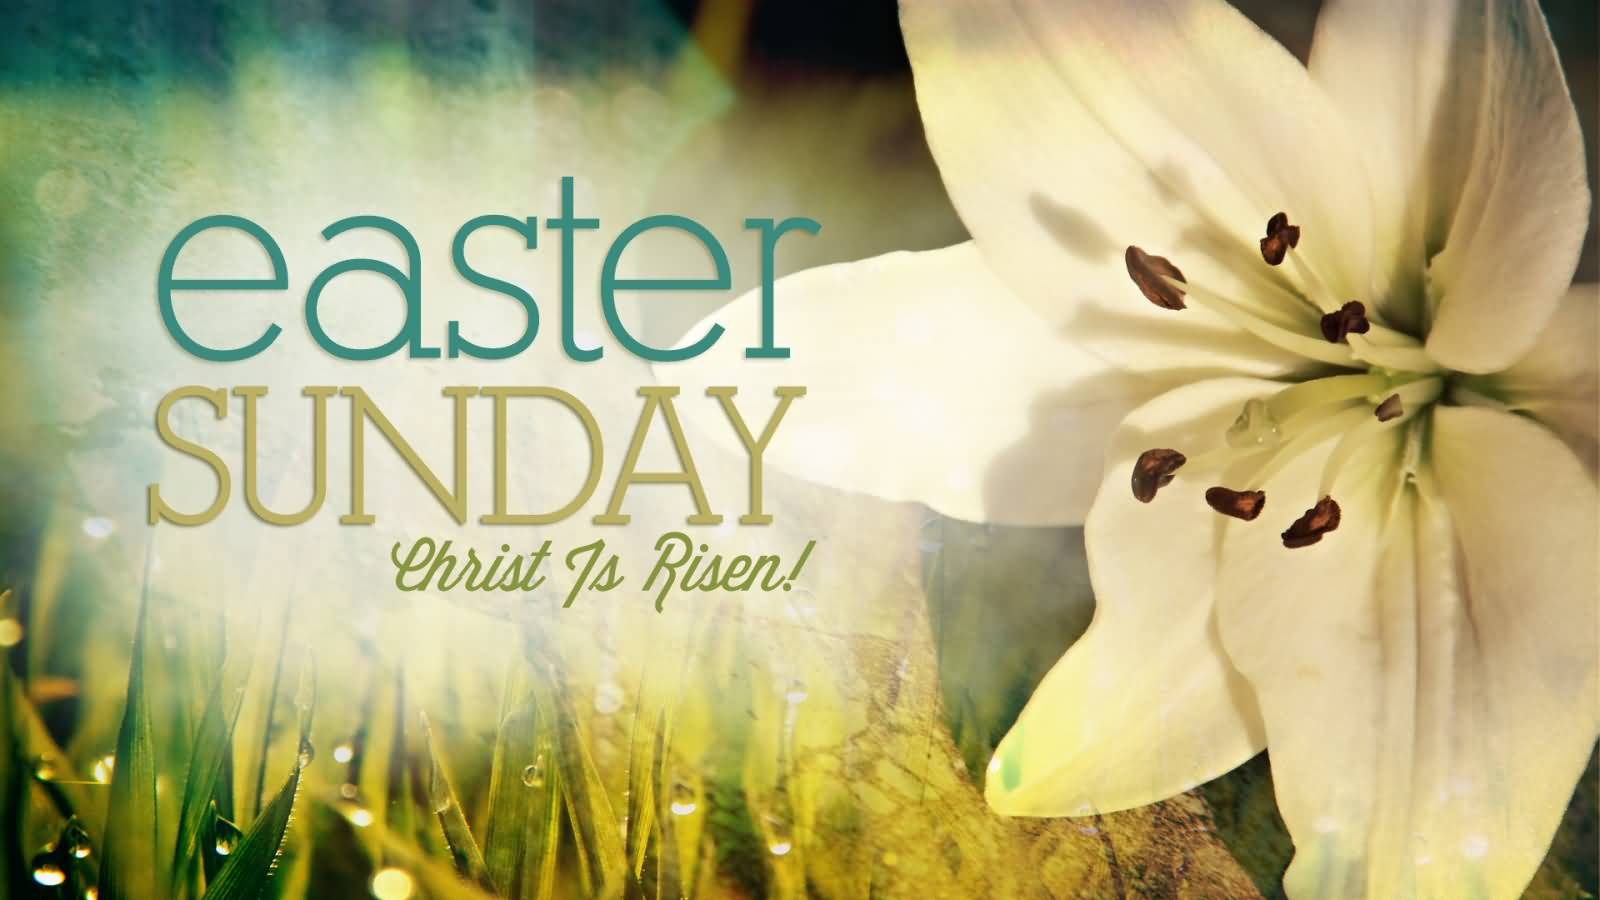 easter sunday The movements of the sun and moon determine the date of easter sunday, christianity's holiest celebration.